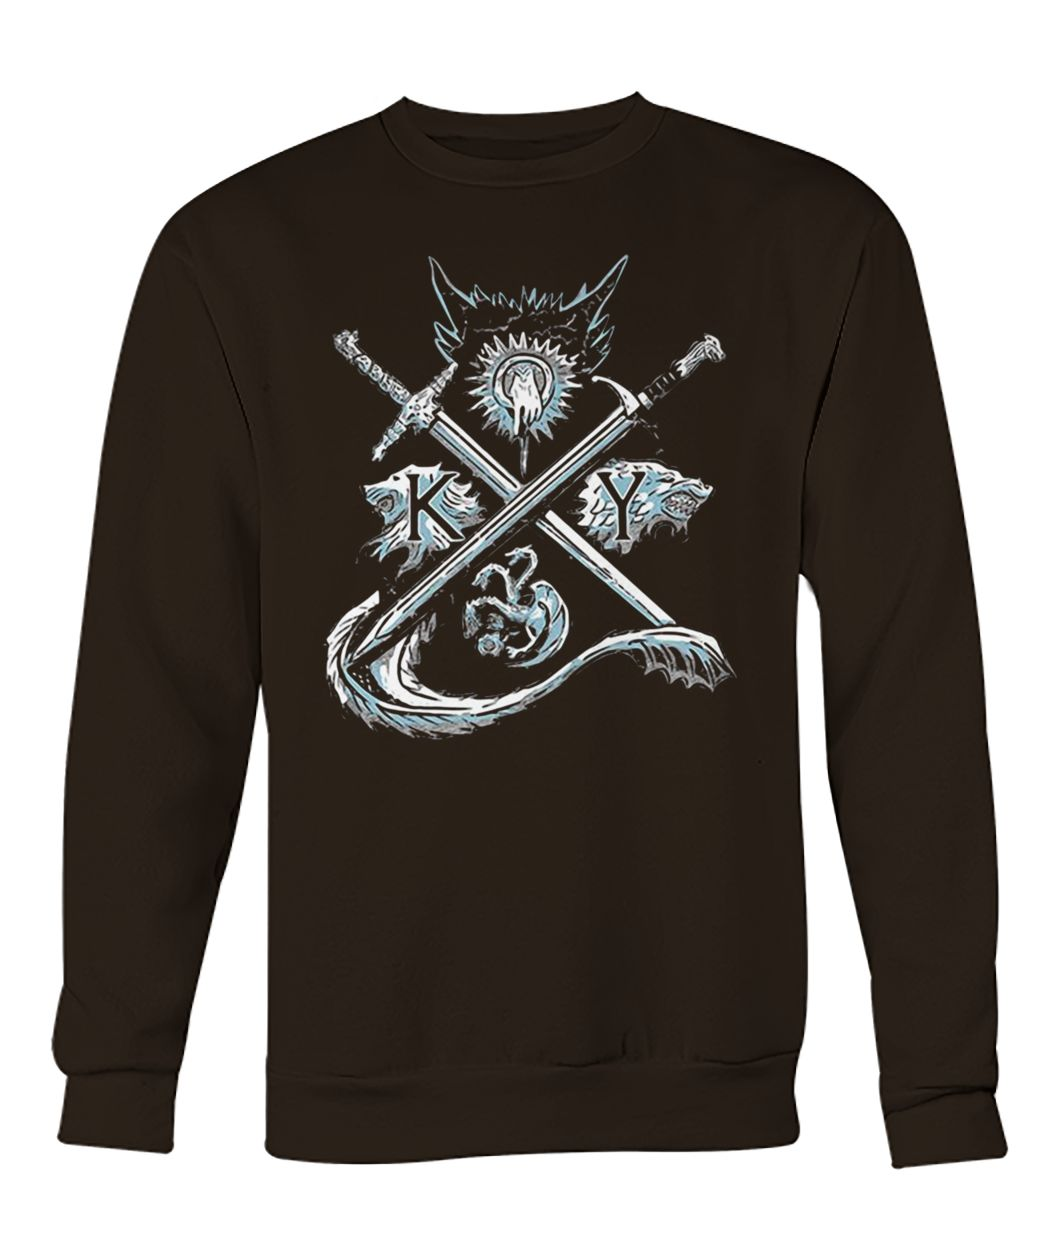 Game of thrones stark targaryen sigil house crew neck sweatshirt